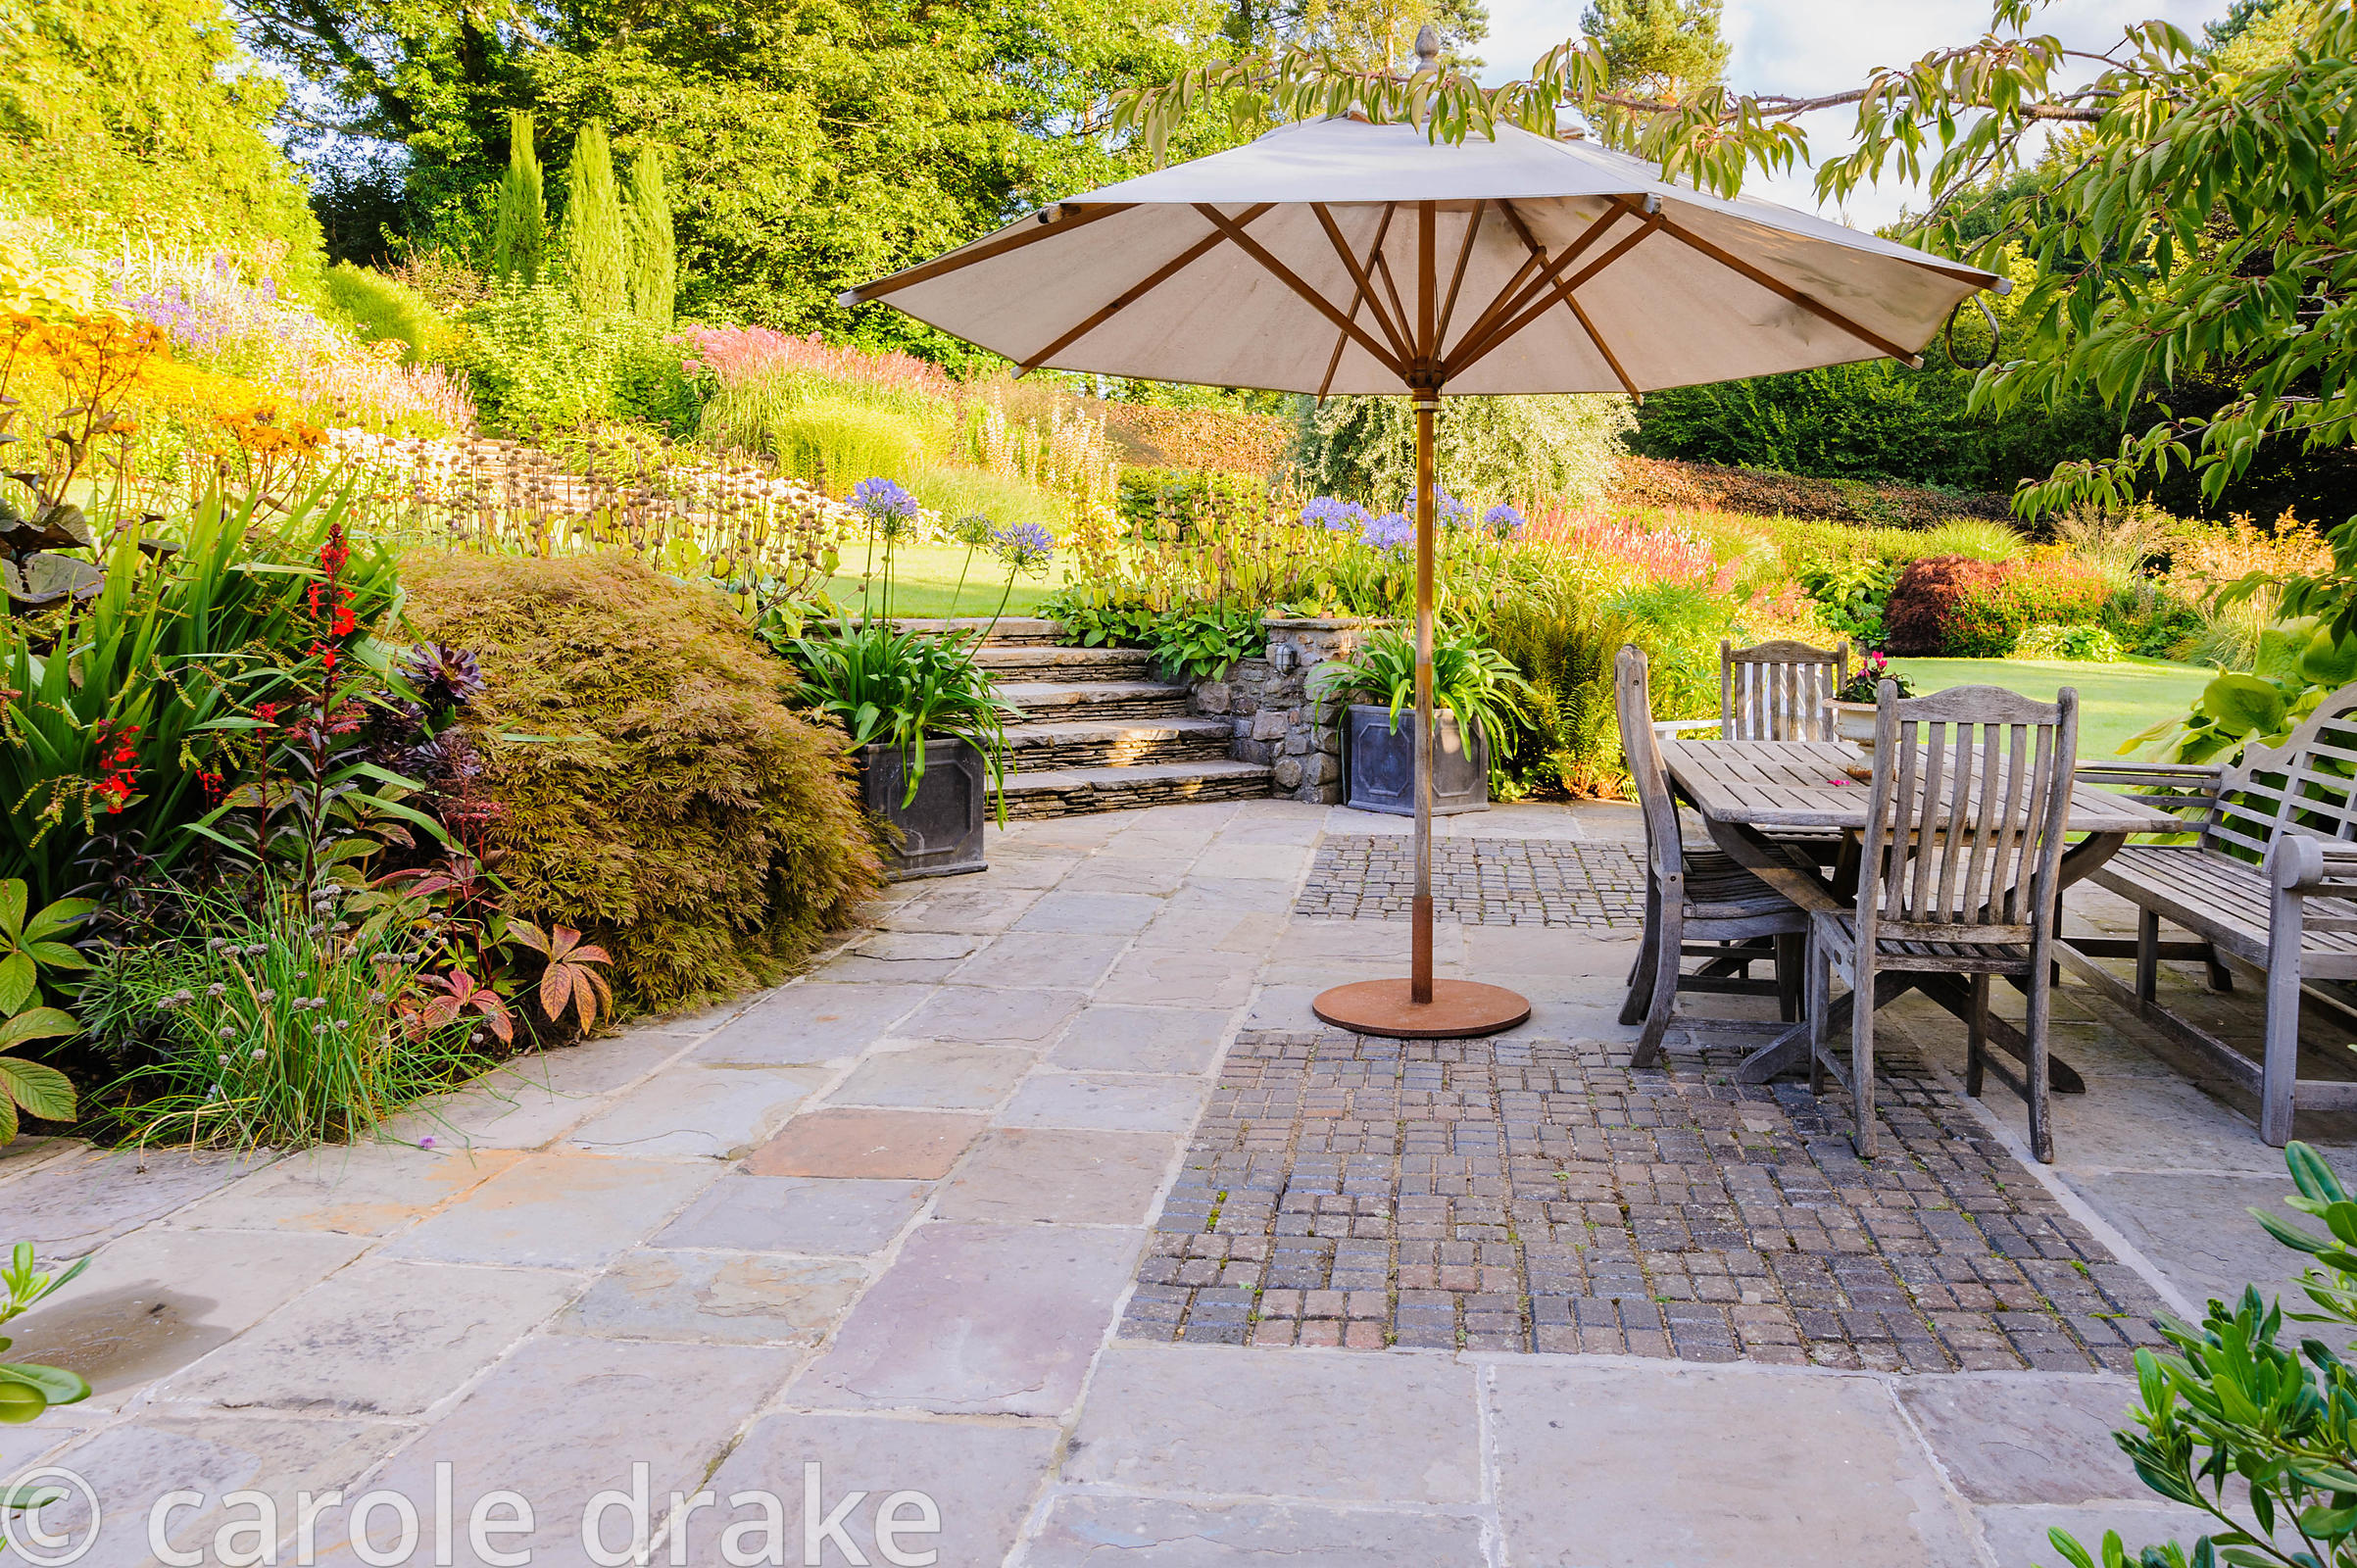 Terrace at the back of the house with dining area and umbrella framed by planting including acer, Lobelia cardinalis, agapant...